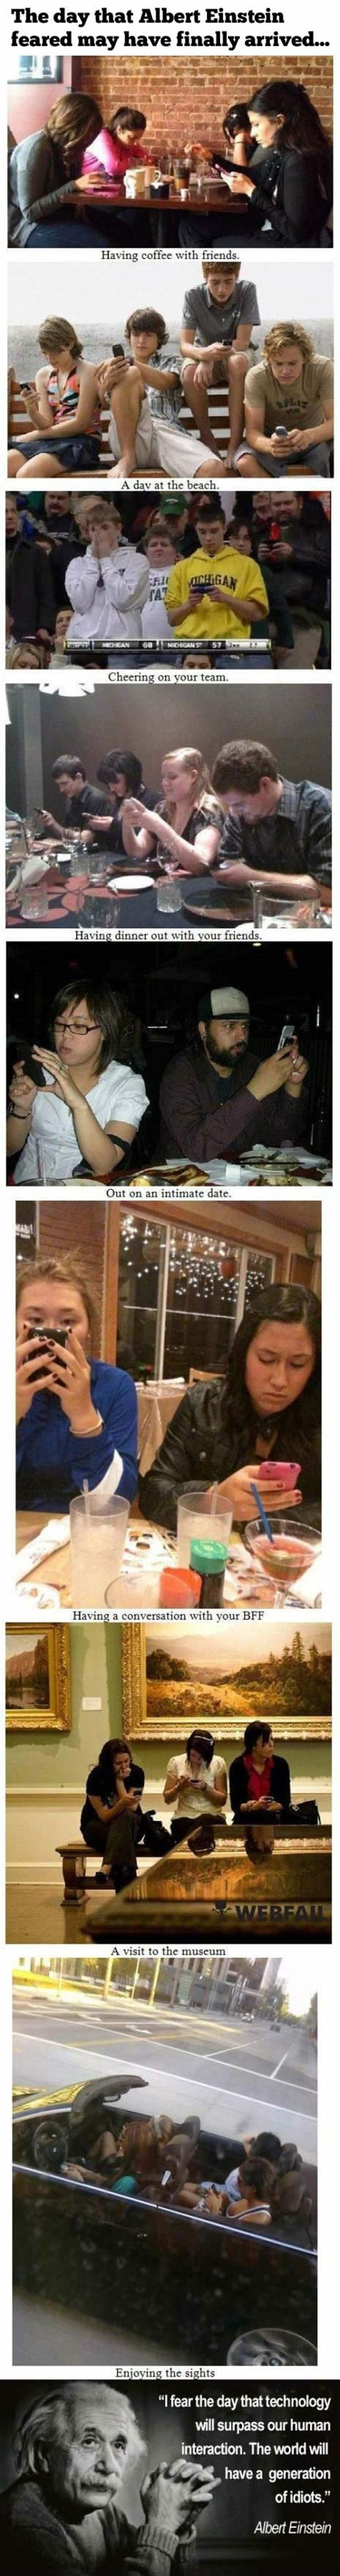 This is somewhat funny, but also a very sad commentary. I see whole families out together, each one on a phone. How sad to lose that moment forever. And I'm just as guilty as they are. Phones have intruded into our lives. Kids play games and don't know how to solve relationship problems because they aren't out playing and learning how to interact.